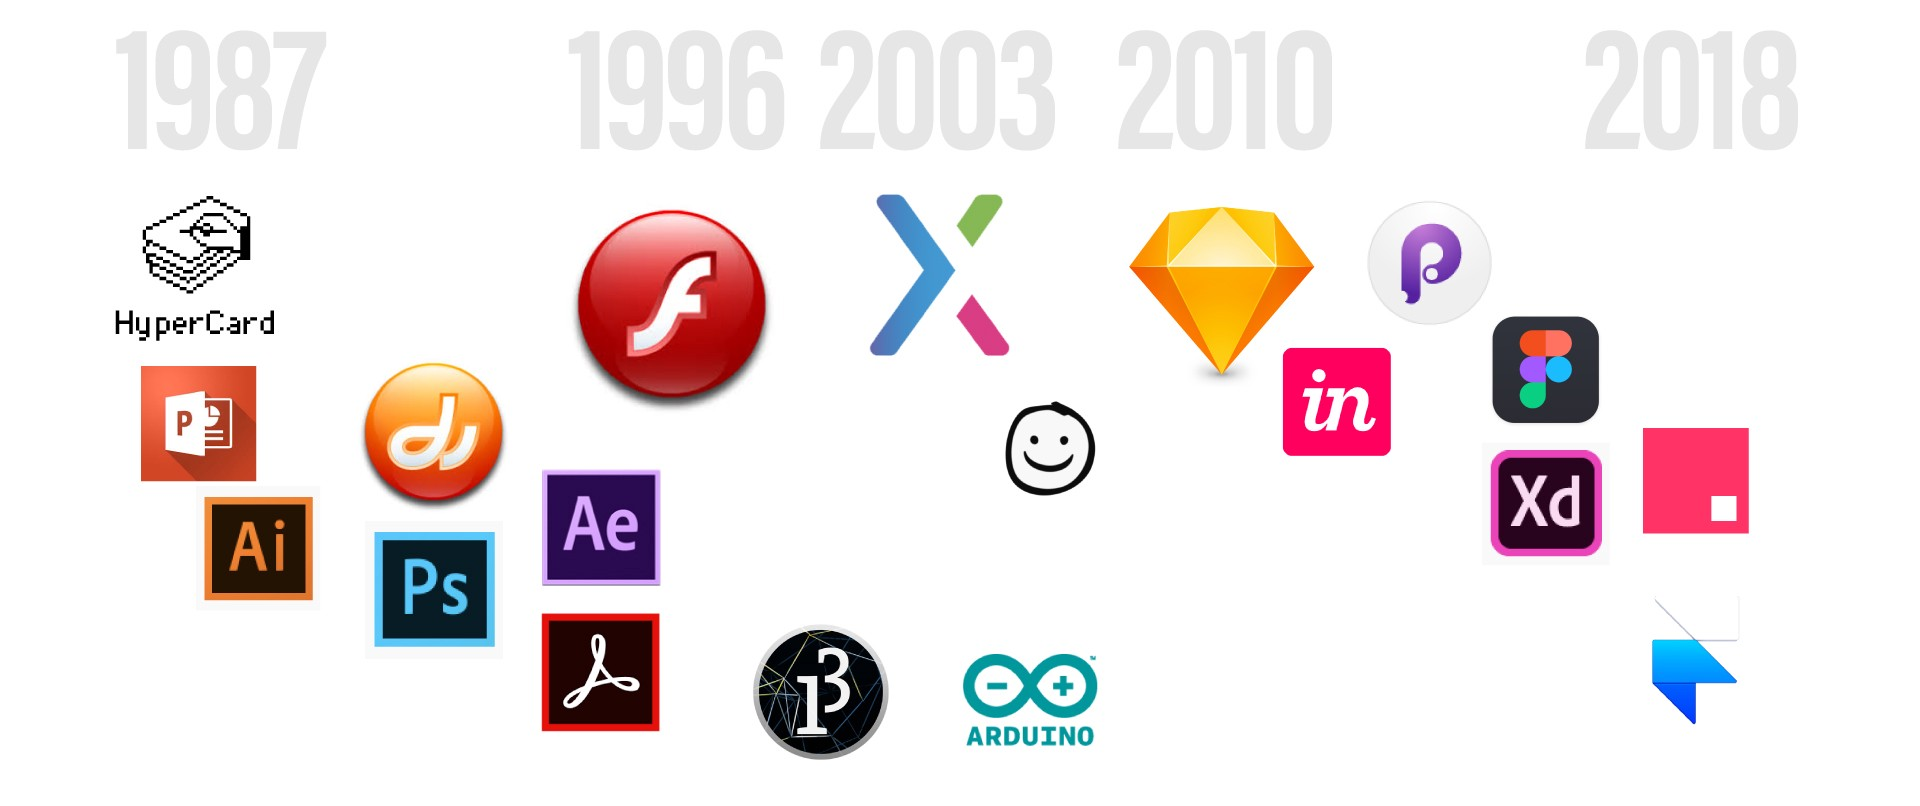 A collage of major prototyping tools' logos placed on a rough timeline from 1987 to 2018.